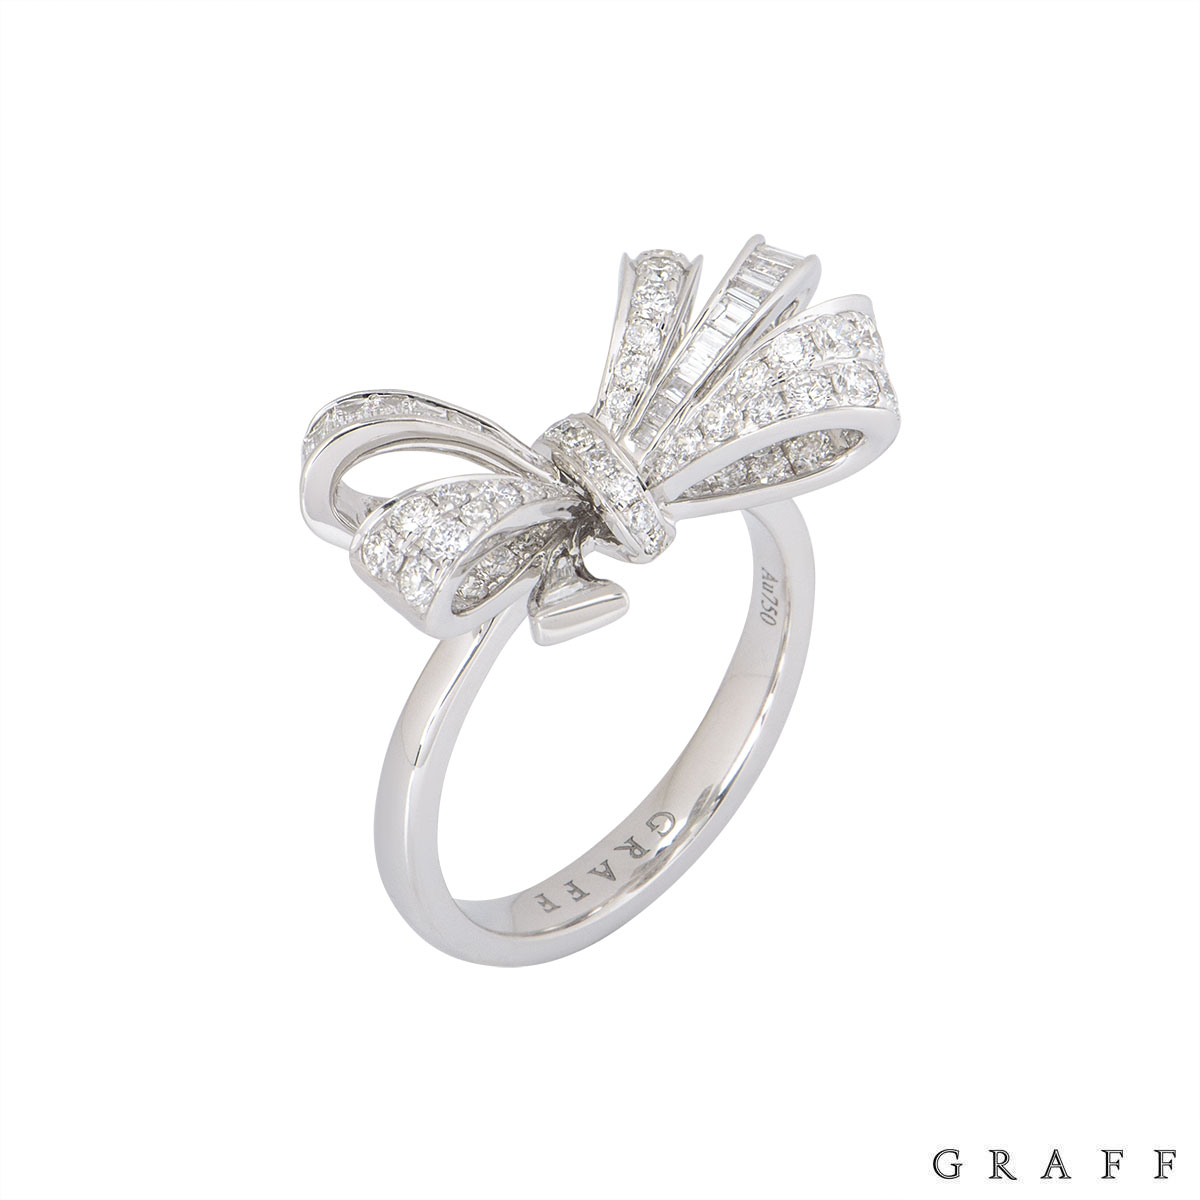 Graff White Gold Diamond Bow Ring